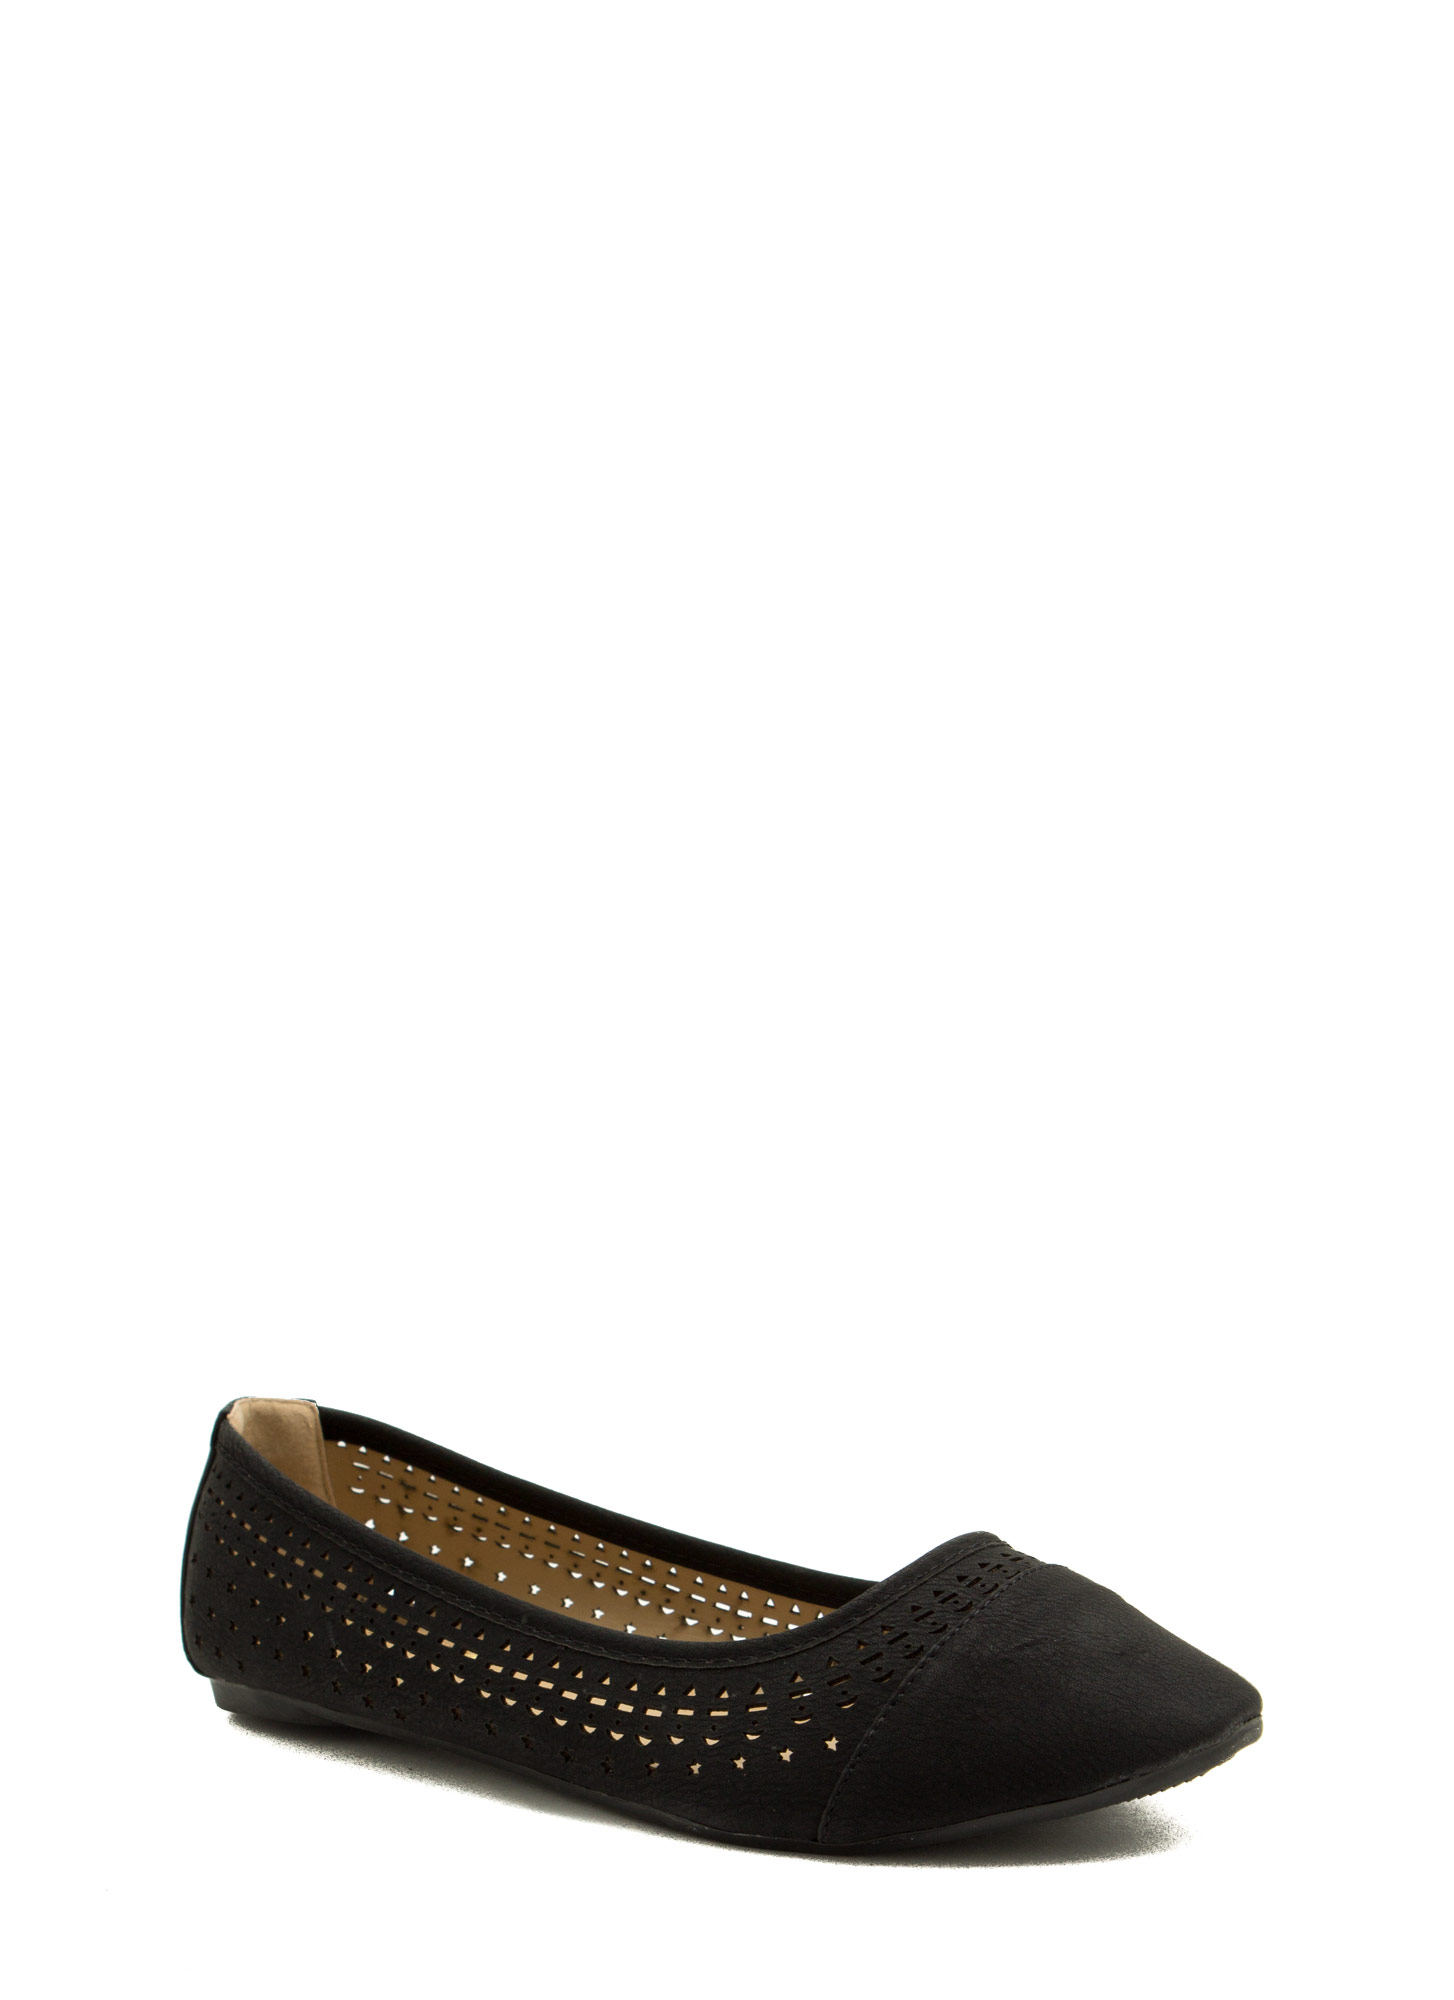 Get Into Shapes Laser Cut Ballet Flats BLACK